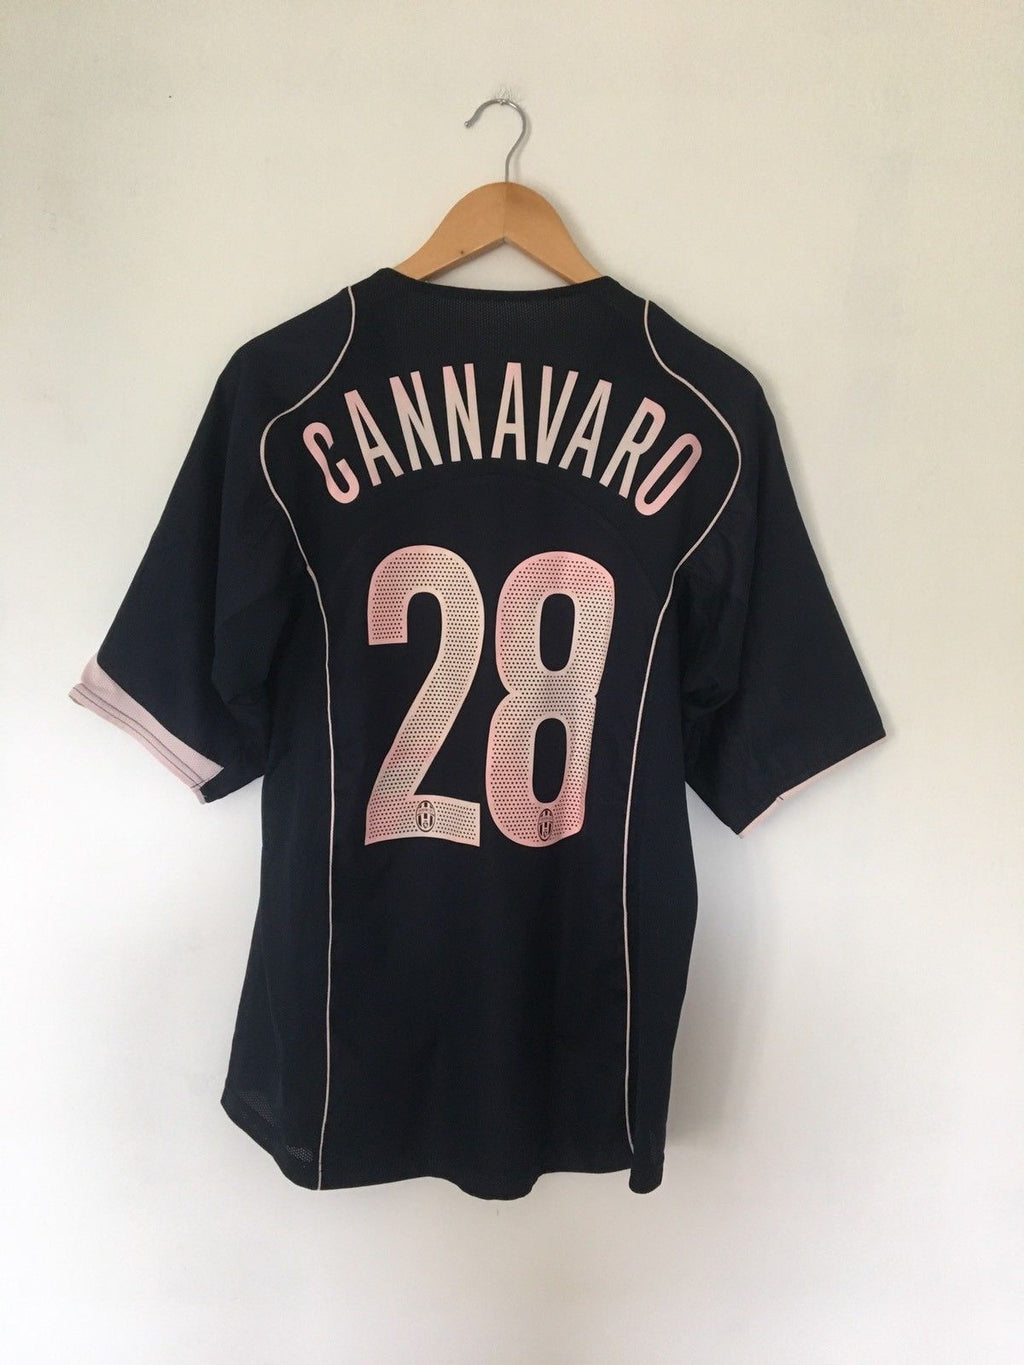 2004/05 Juventus Away Shirt Cannavaro #28 (L) 7/10